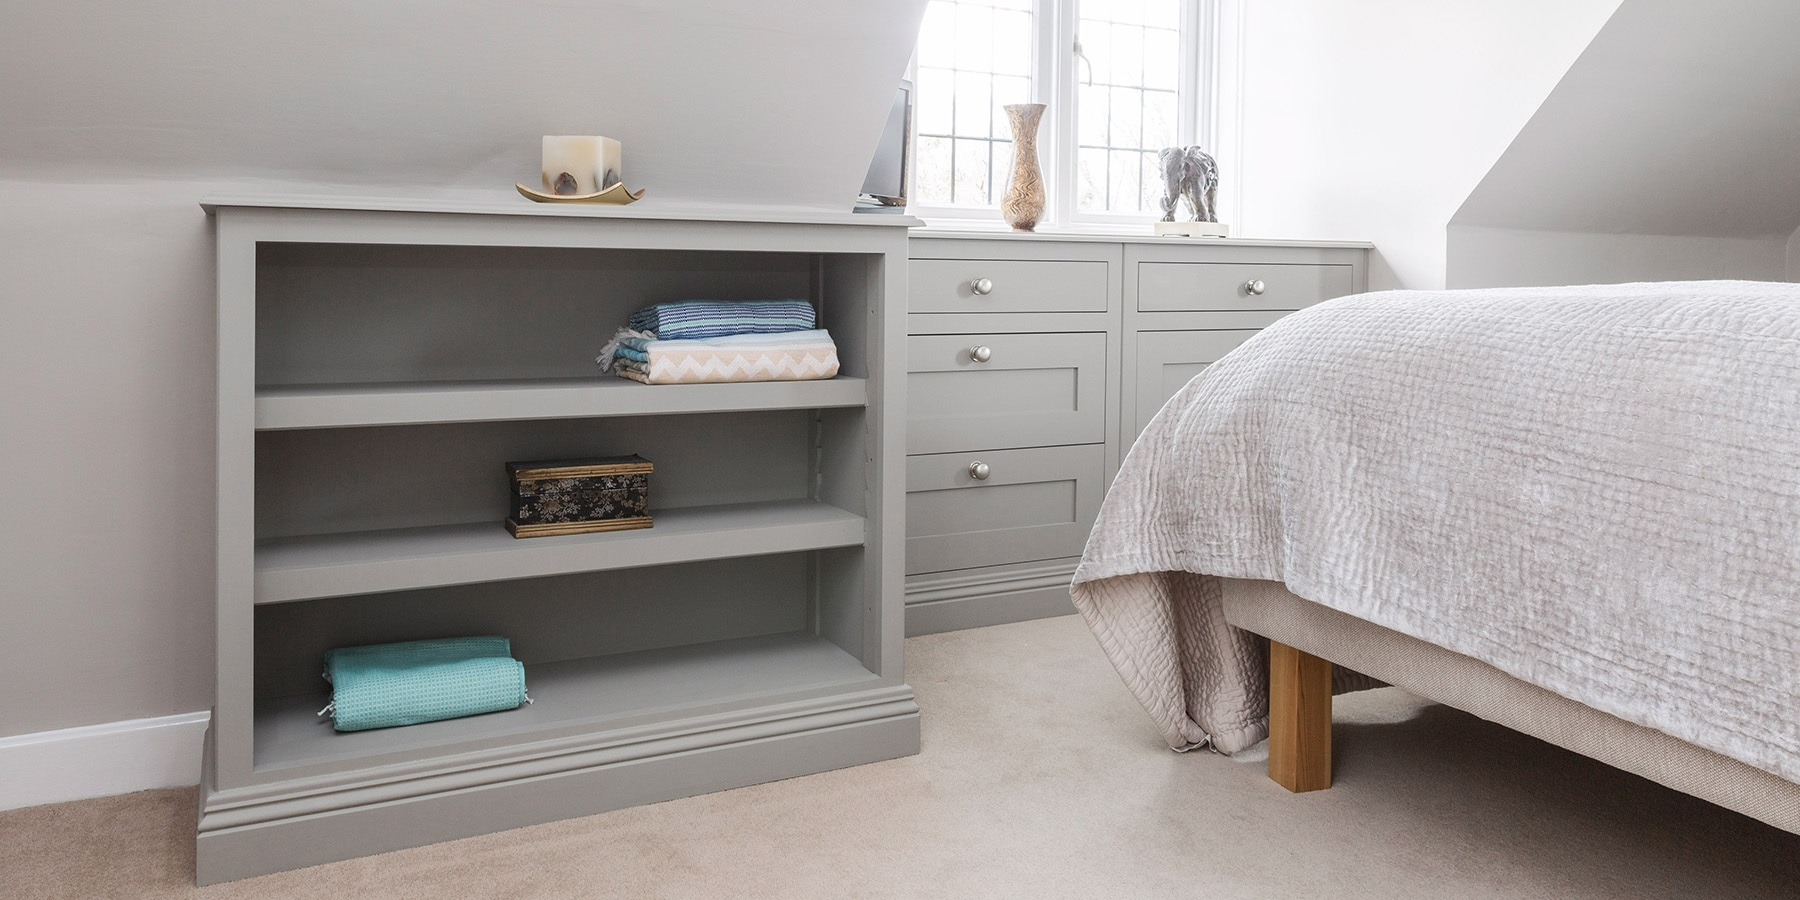 Burlanes Interiors - Bespoke, made-to-measure handmade bedroom furniture and fitted wardrobes